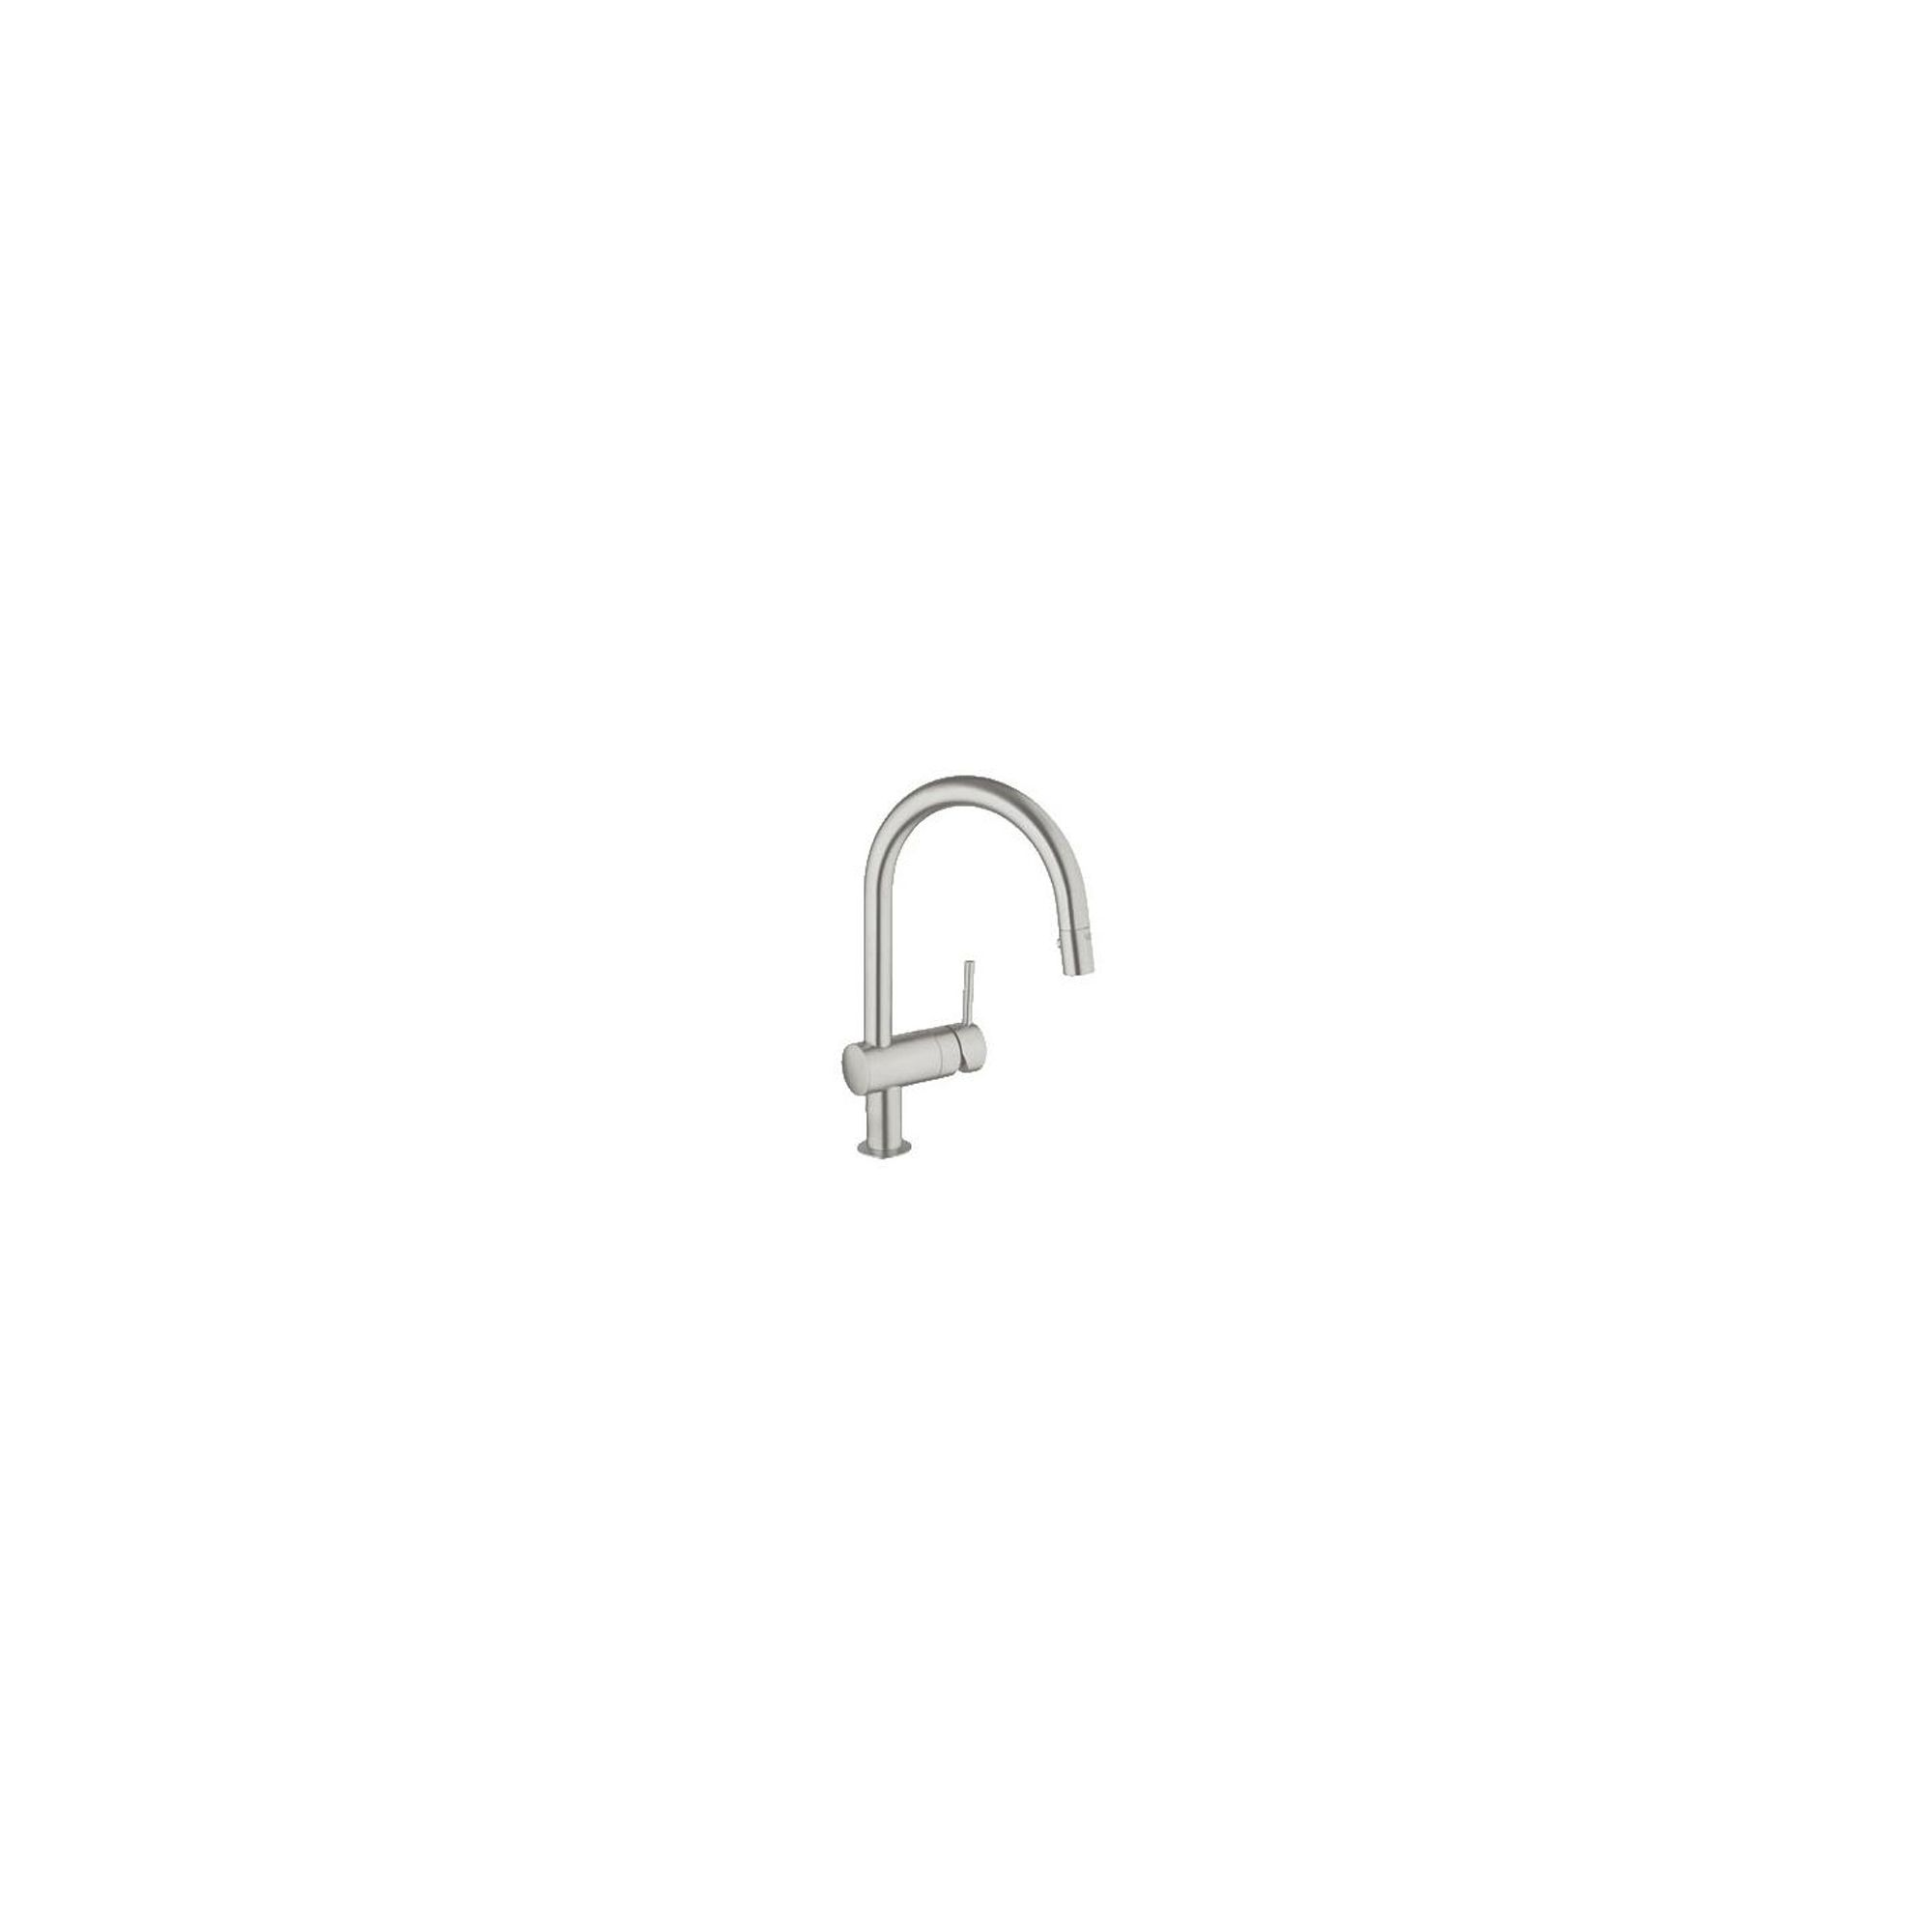 Grohe Minta Mono Sink Mixer Tap, C-Spout, Pull-Out Spray, Single Handle, SuperSteel at Tesco Direct